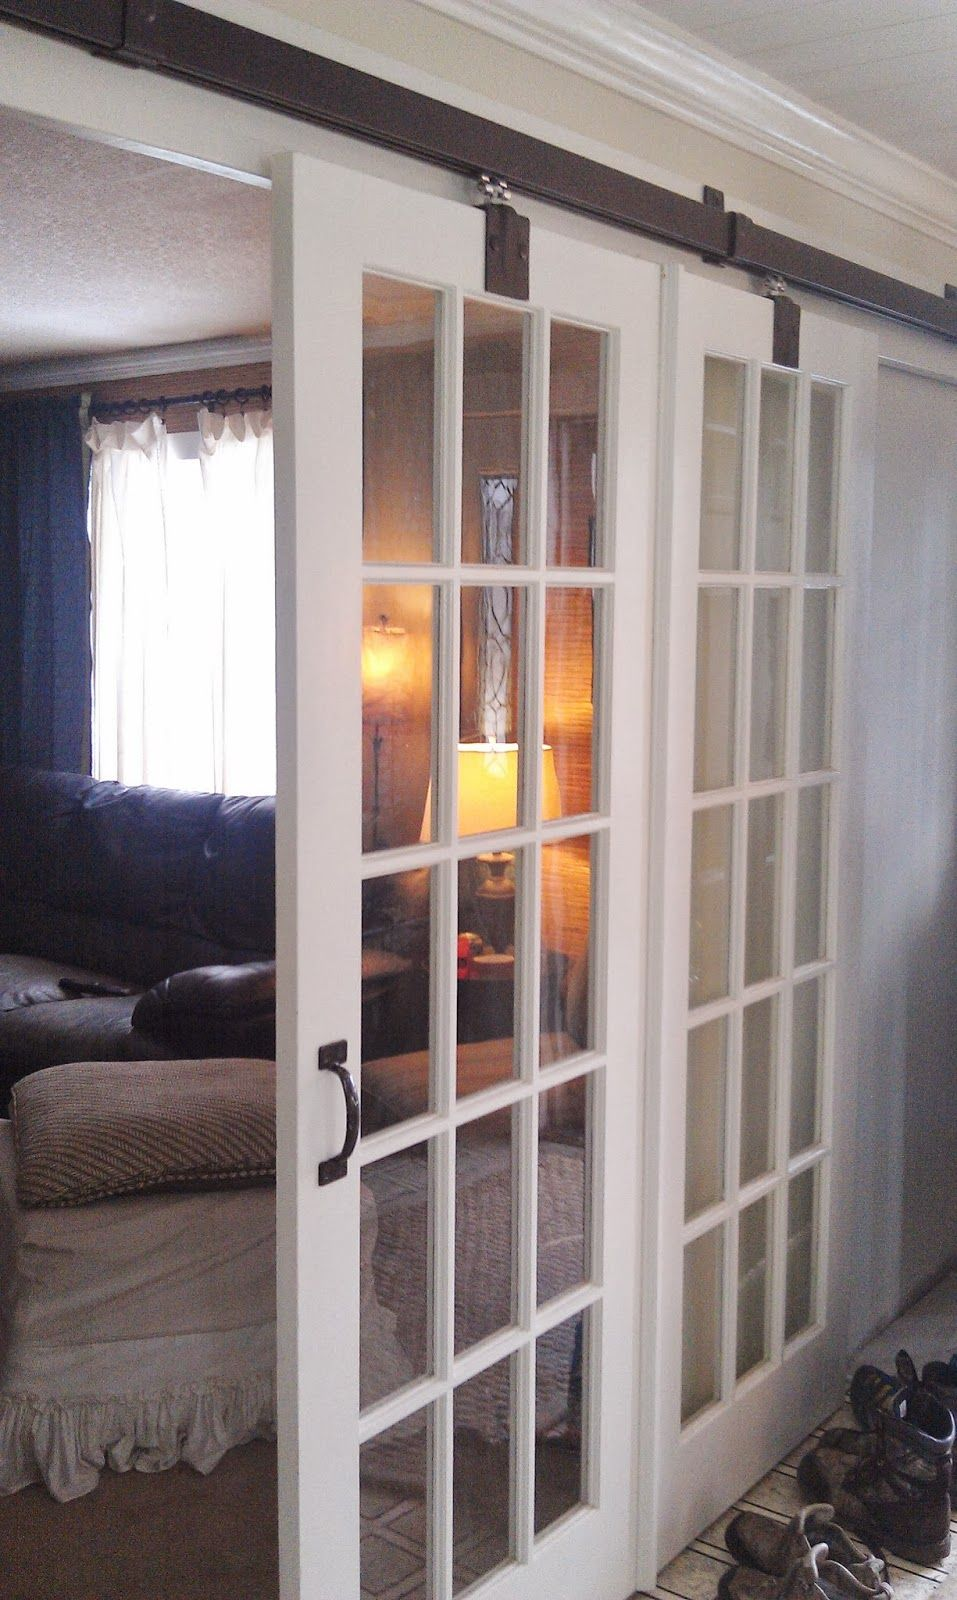 Charmant Interior Sliding Glass Doors, Wall Partitions, Barn Doors